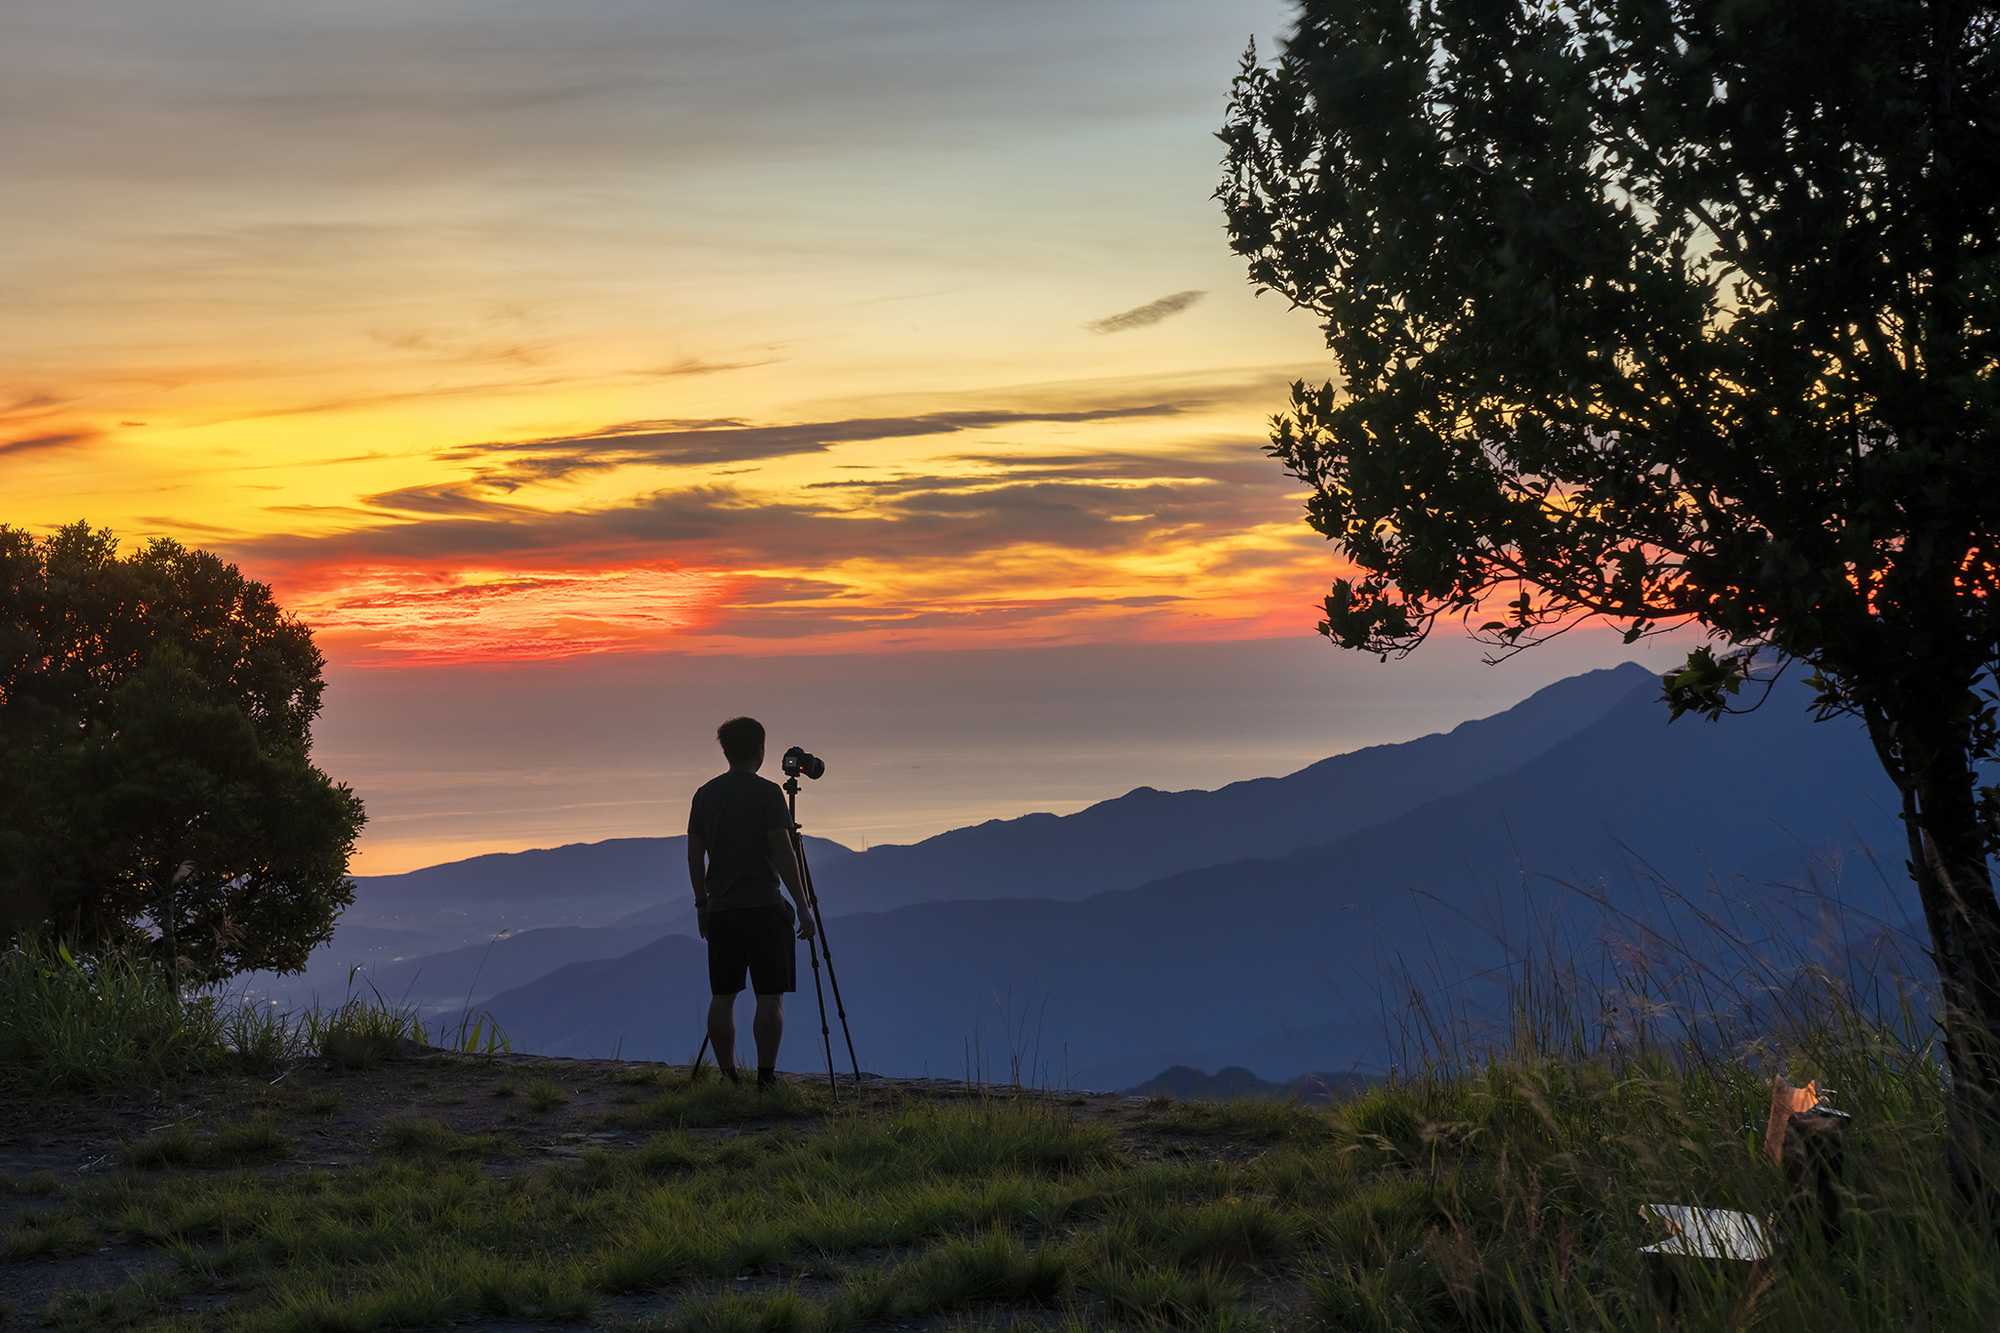 A tourist sets up a tripod to take pictures of the breathtaking scenery in Bach Ma National Park in Thua Thien-Hue Province, Vietnam. Photo: Tran Luu Anh Tuan / Tuoi Tre